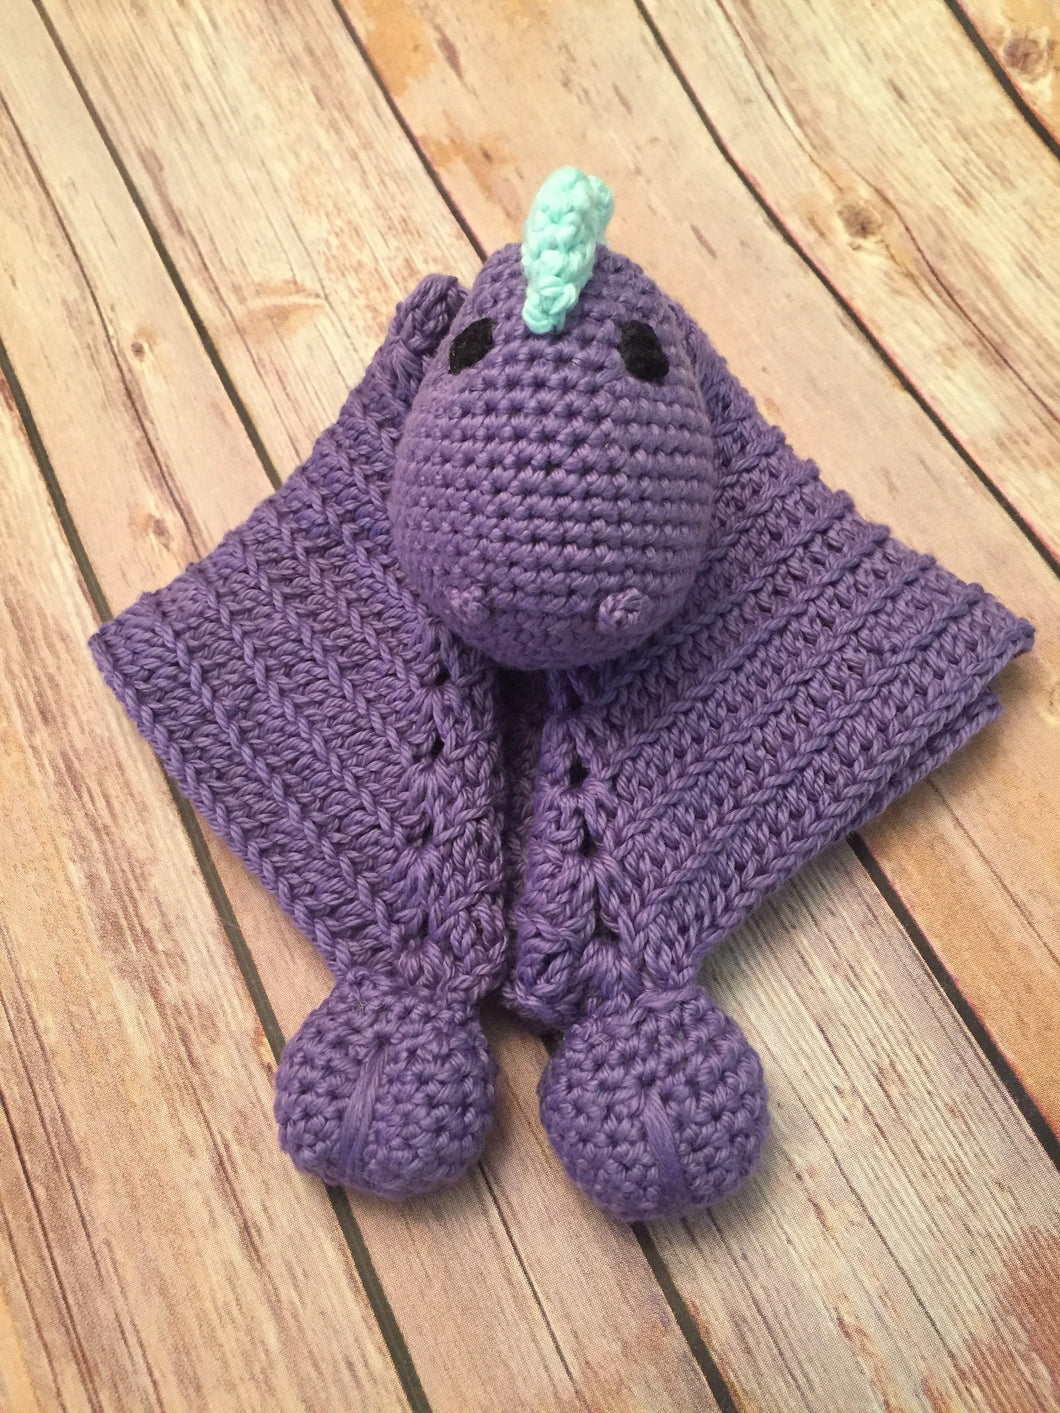 Crochet Dinosaur Lovey - Baby blanket - Dino Lovie